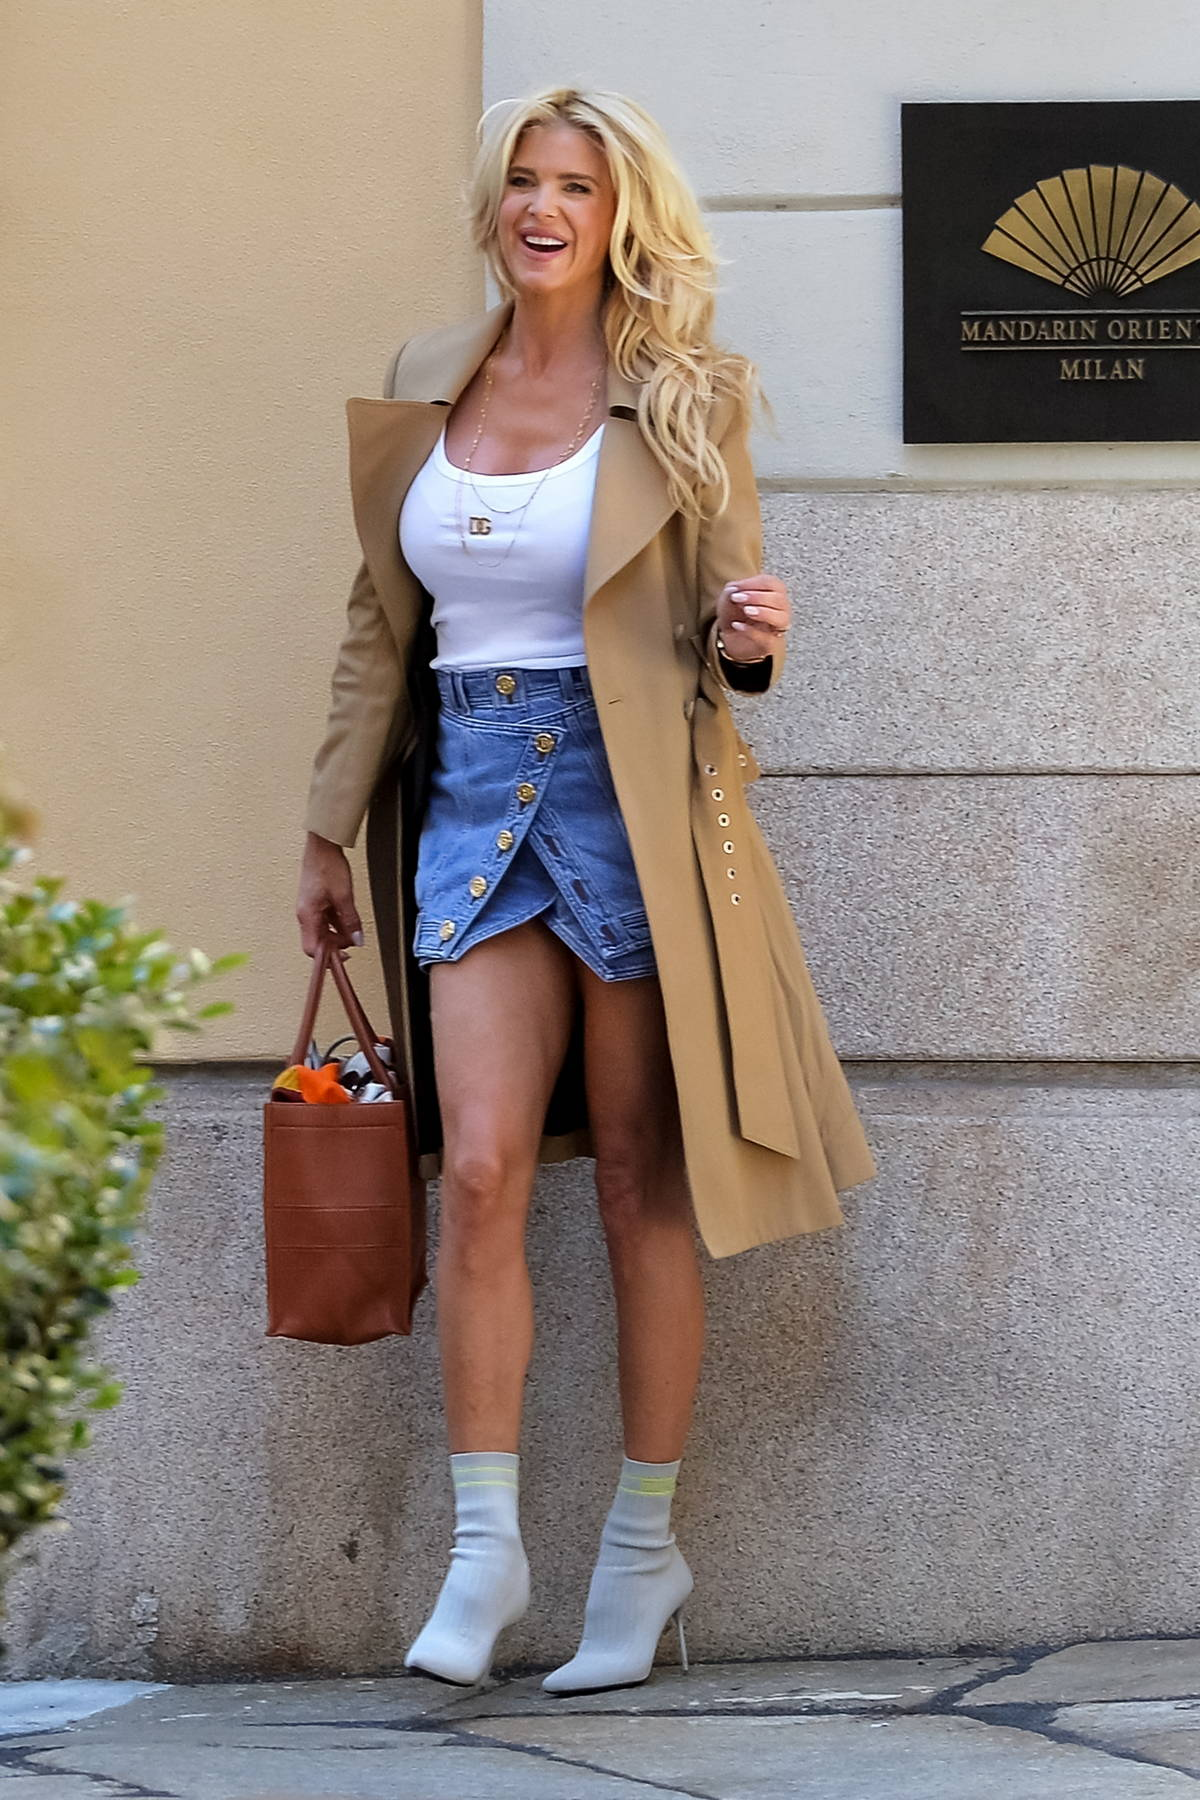 Victoria Silvstedt looks stylish while posing for photos in front of Mandarin Oriental Hotel in Milan, Italy